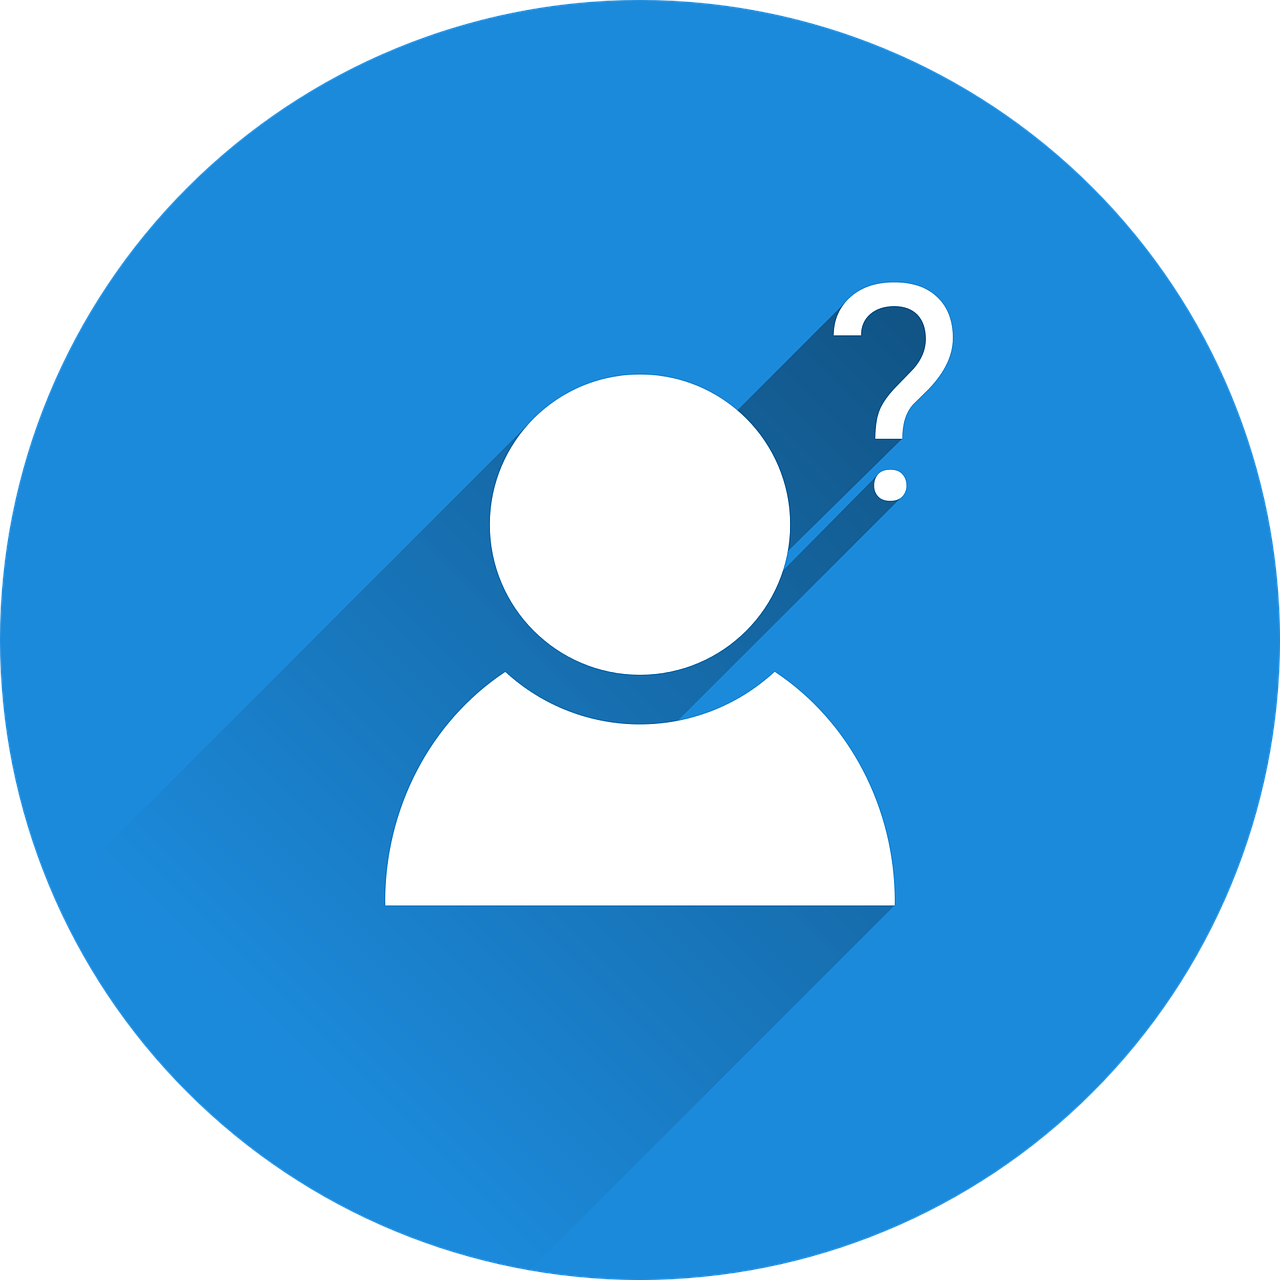 Person and question mark icon